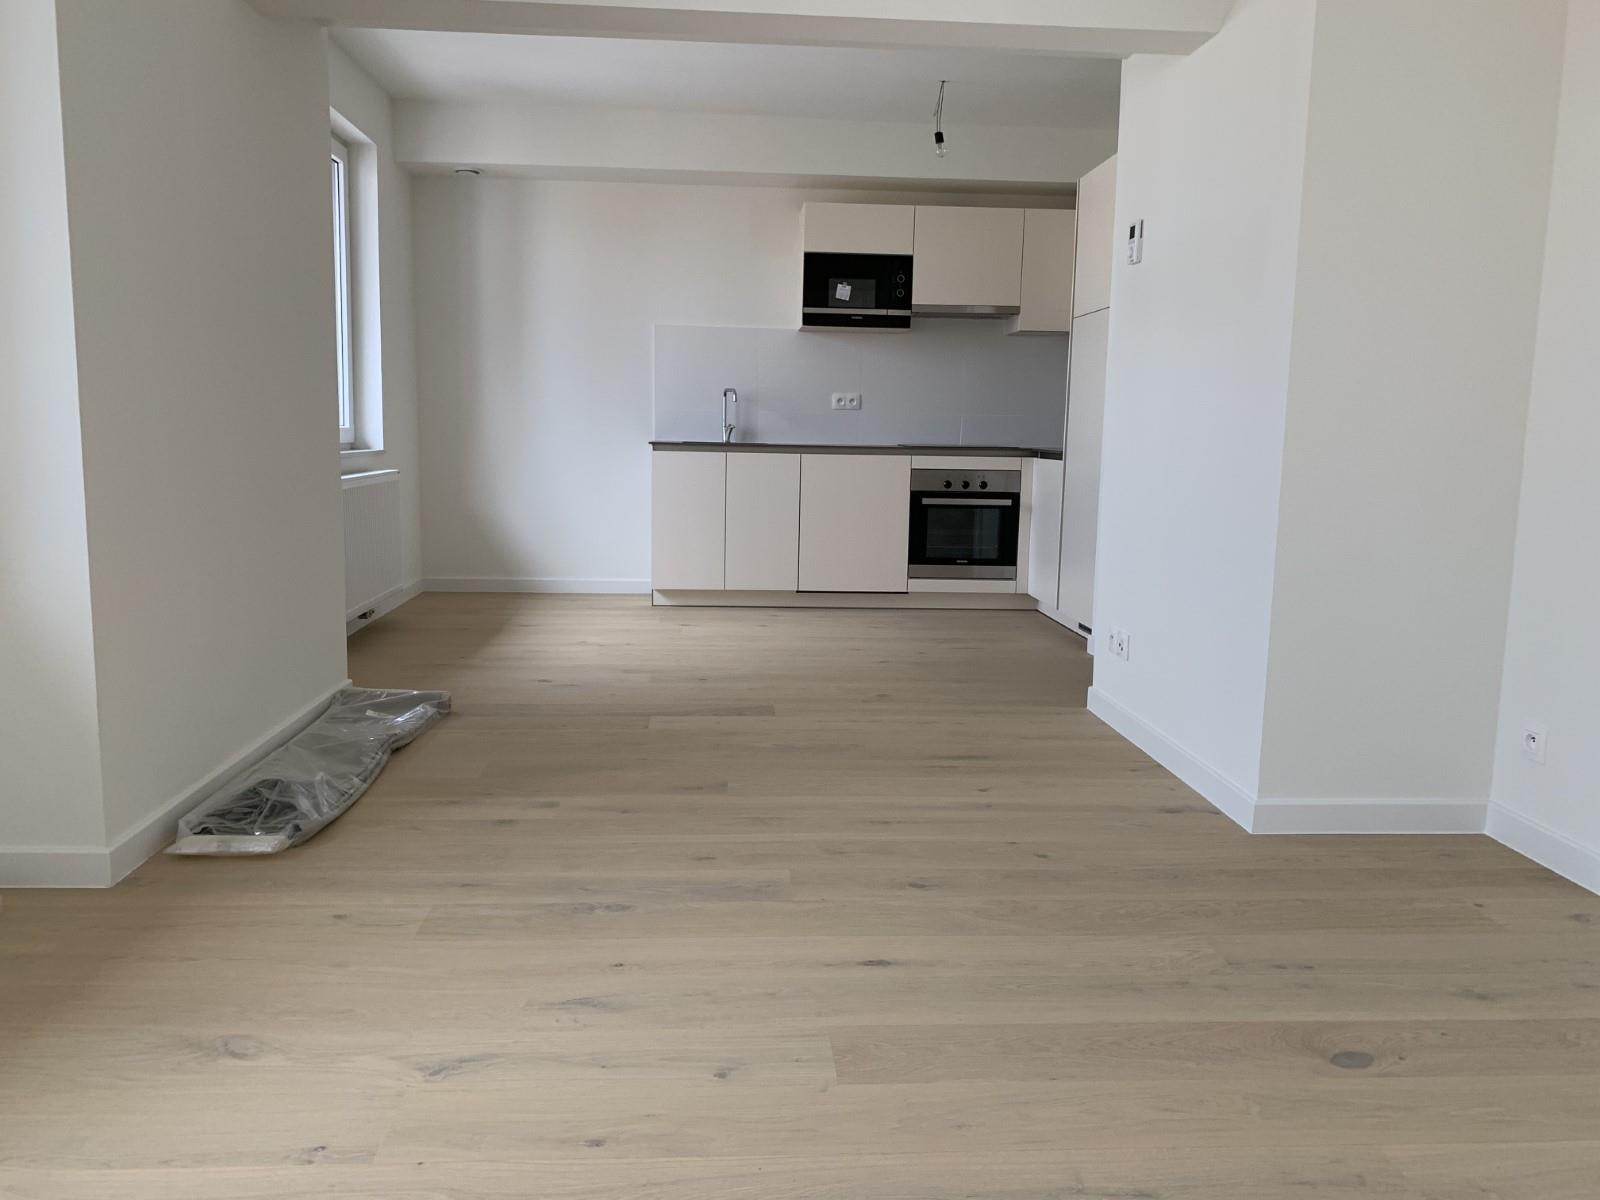 Appartement exceptionnel - Schaerbeek - #3964914-26